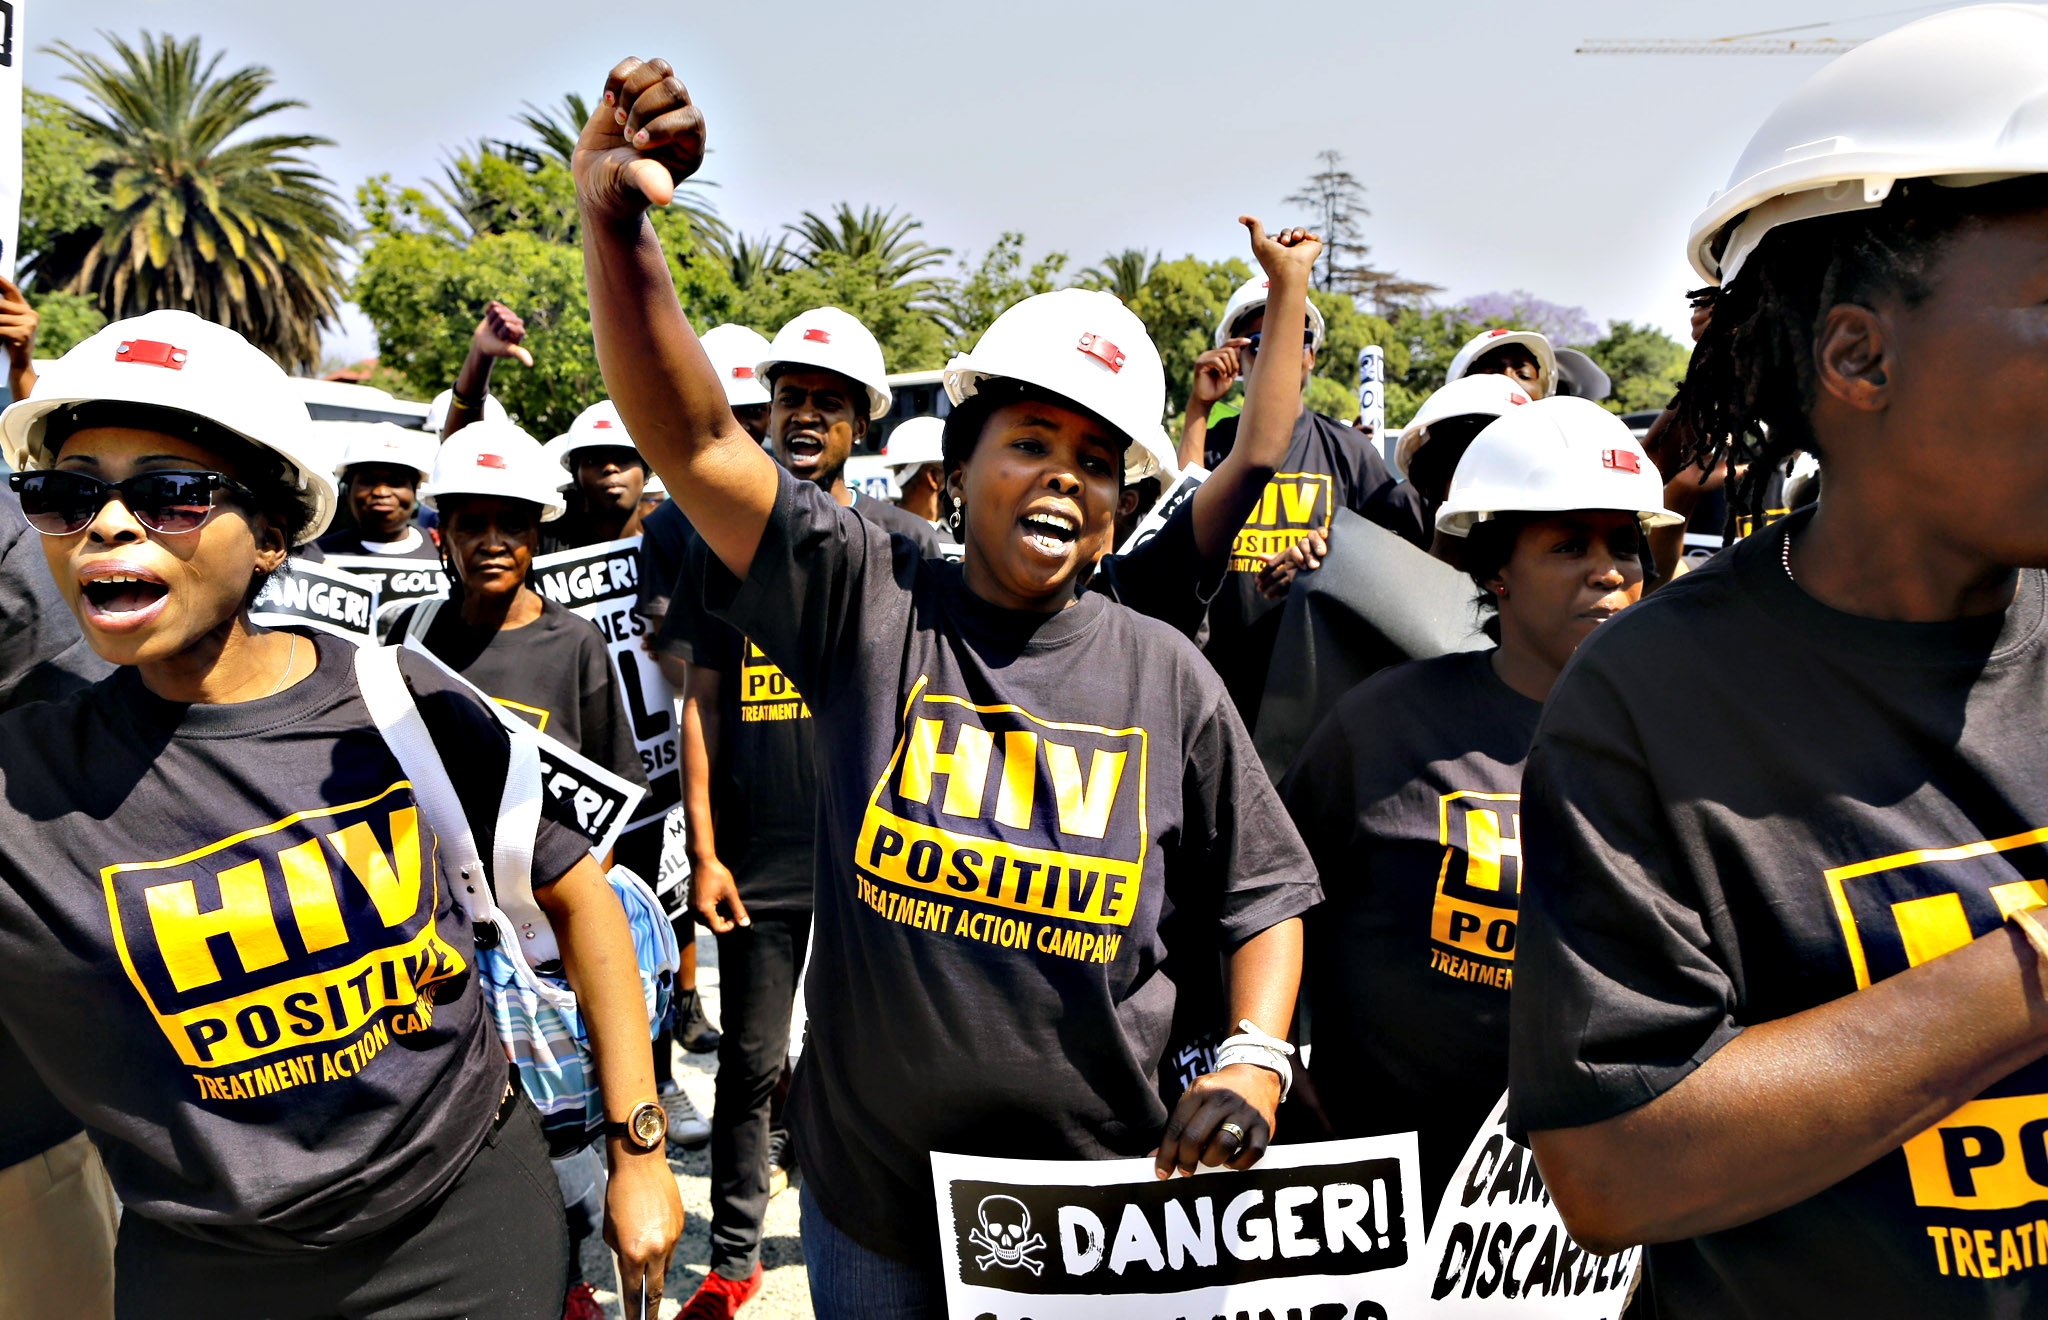 South Africa miners strike ...epa04975918 Protesters chant slogans during a protest to show their support to fellow miners who filed a lawsuit against mining companies, Johannesburg, South Africa, 13 October 2015. High Court in Johannesburg will begin on 13 October hearing in a lawsuit filed by 56 former mine workers who say they suffered silicosis, a lung disease caused by the inhalation of silica dust, due to their work at gold mines.